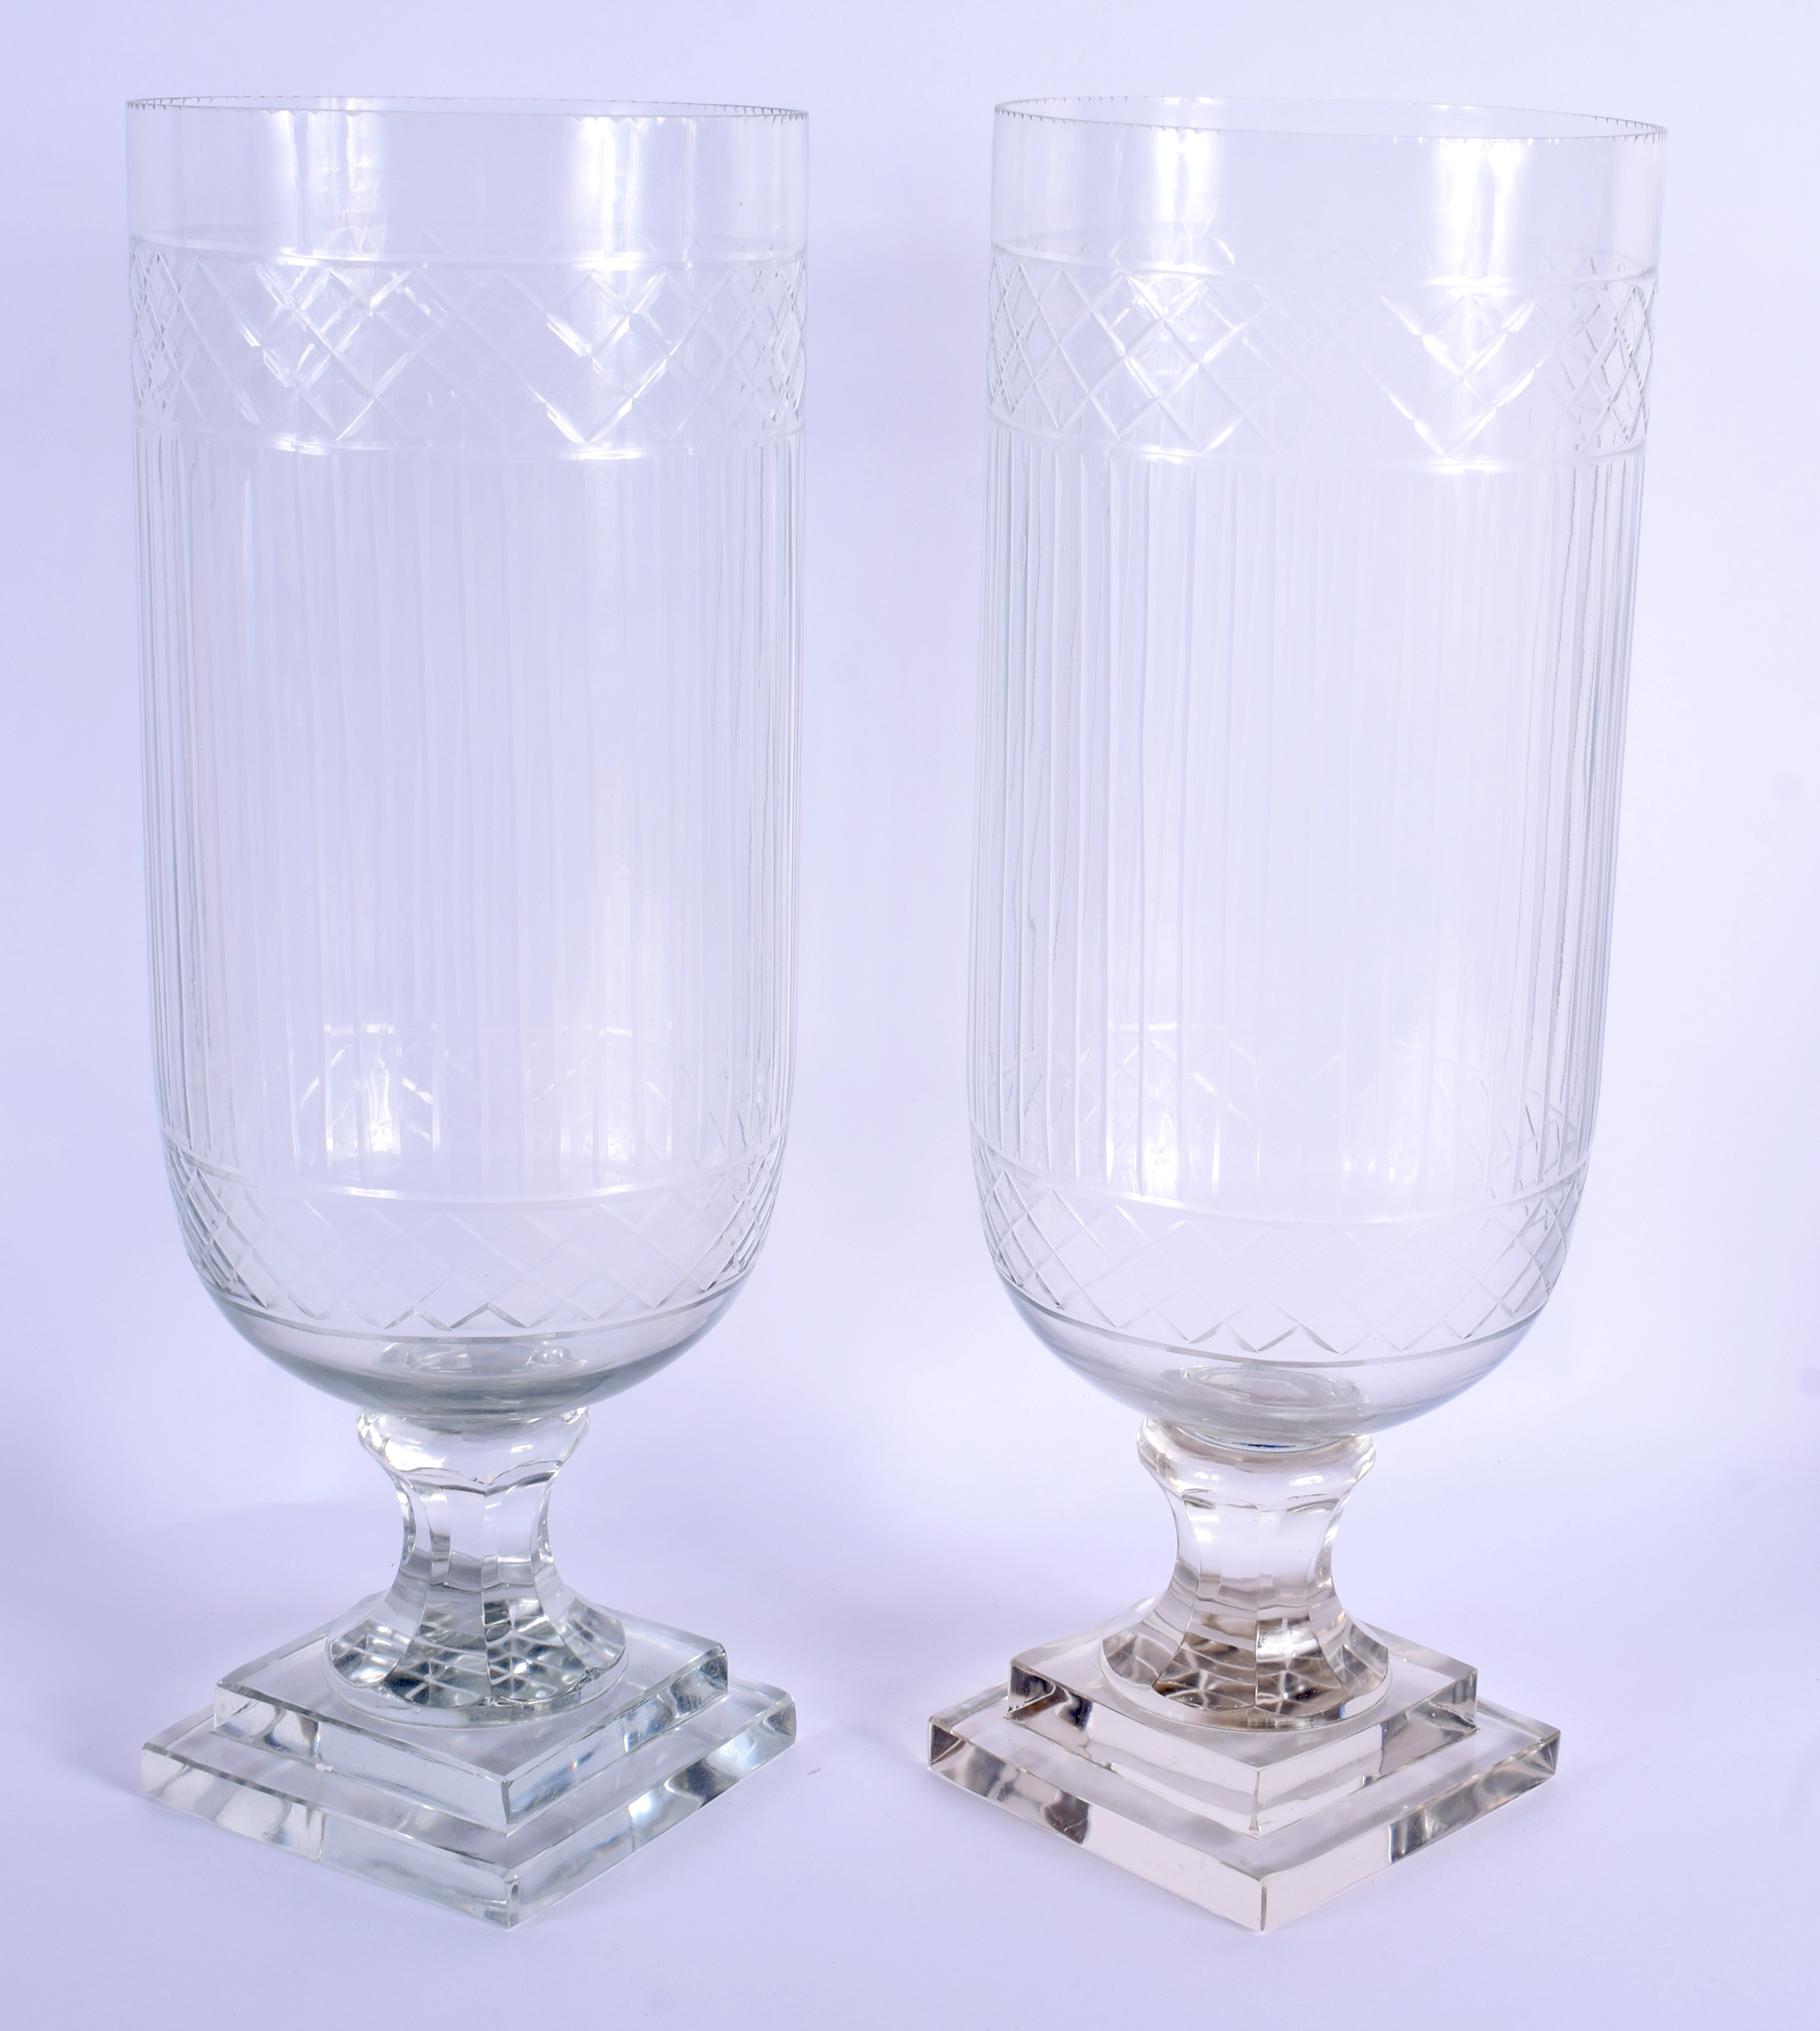 A PAIR OF EUROPEAN CELERY STORM STYLE GLASS VASES. 40 cm high. - Image 2 of 2